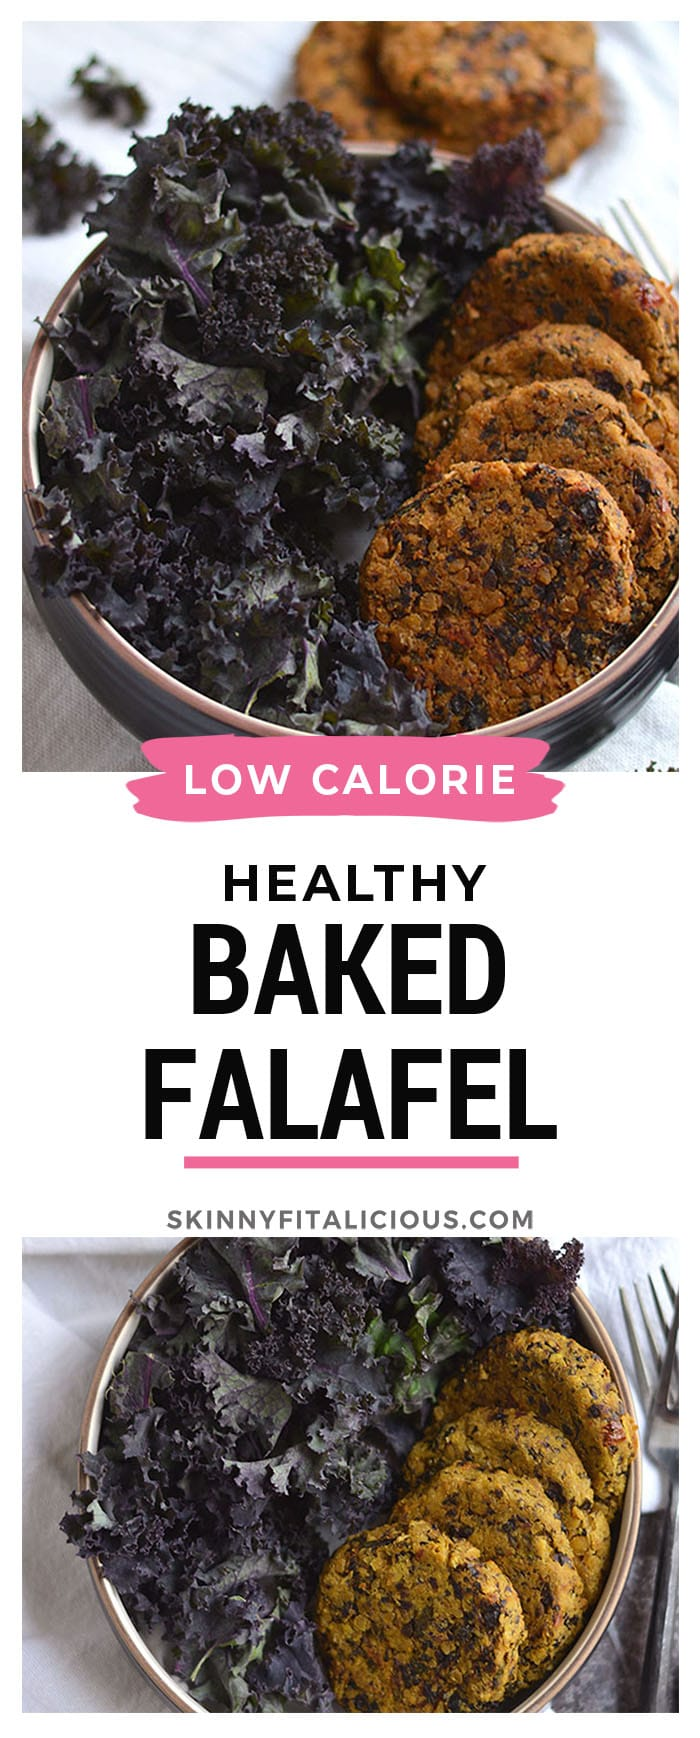 This Kale Sundried Tomato Falafel made with hearty, comforting and wholesome ingredients is a quick and easy Mediterranean style meal. A warm, soul filling food perfect on a cold day. Gluten Free + Low Calorie + Vegan